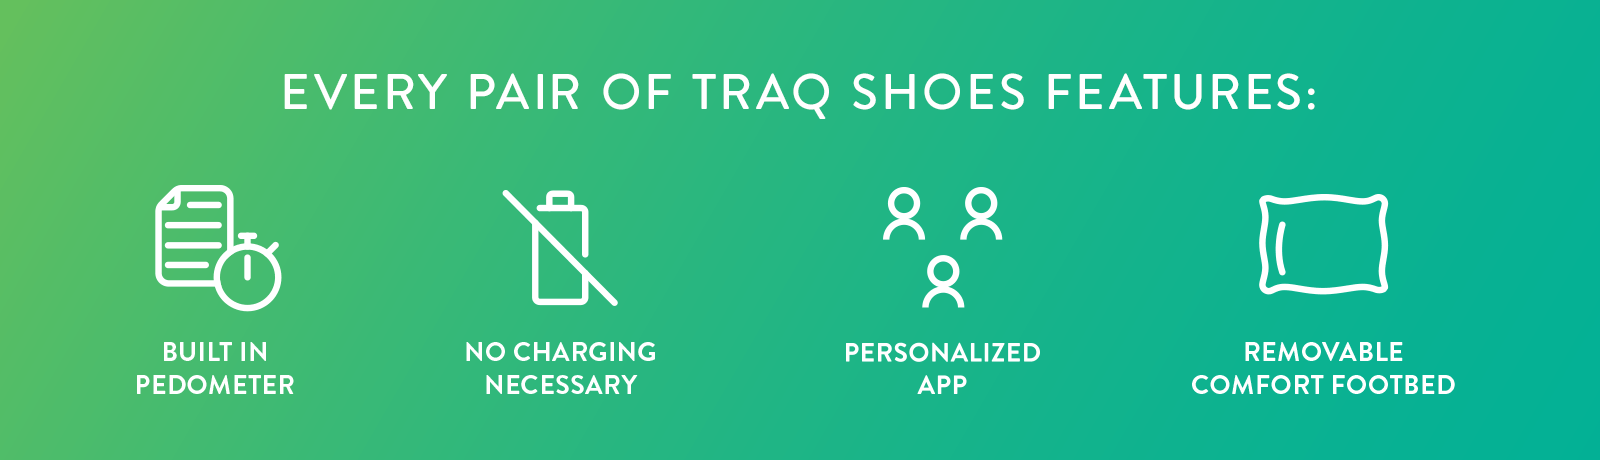 Features of Traq Shoes